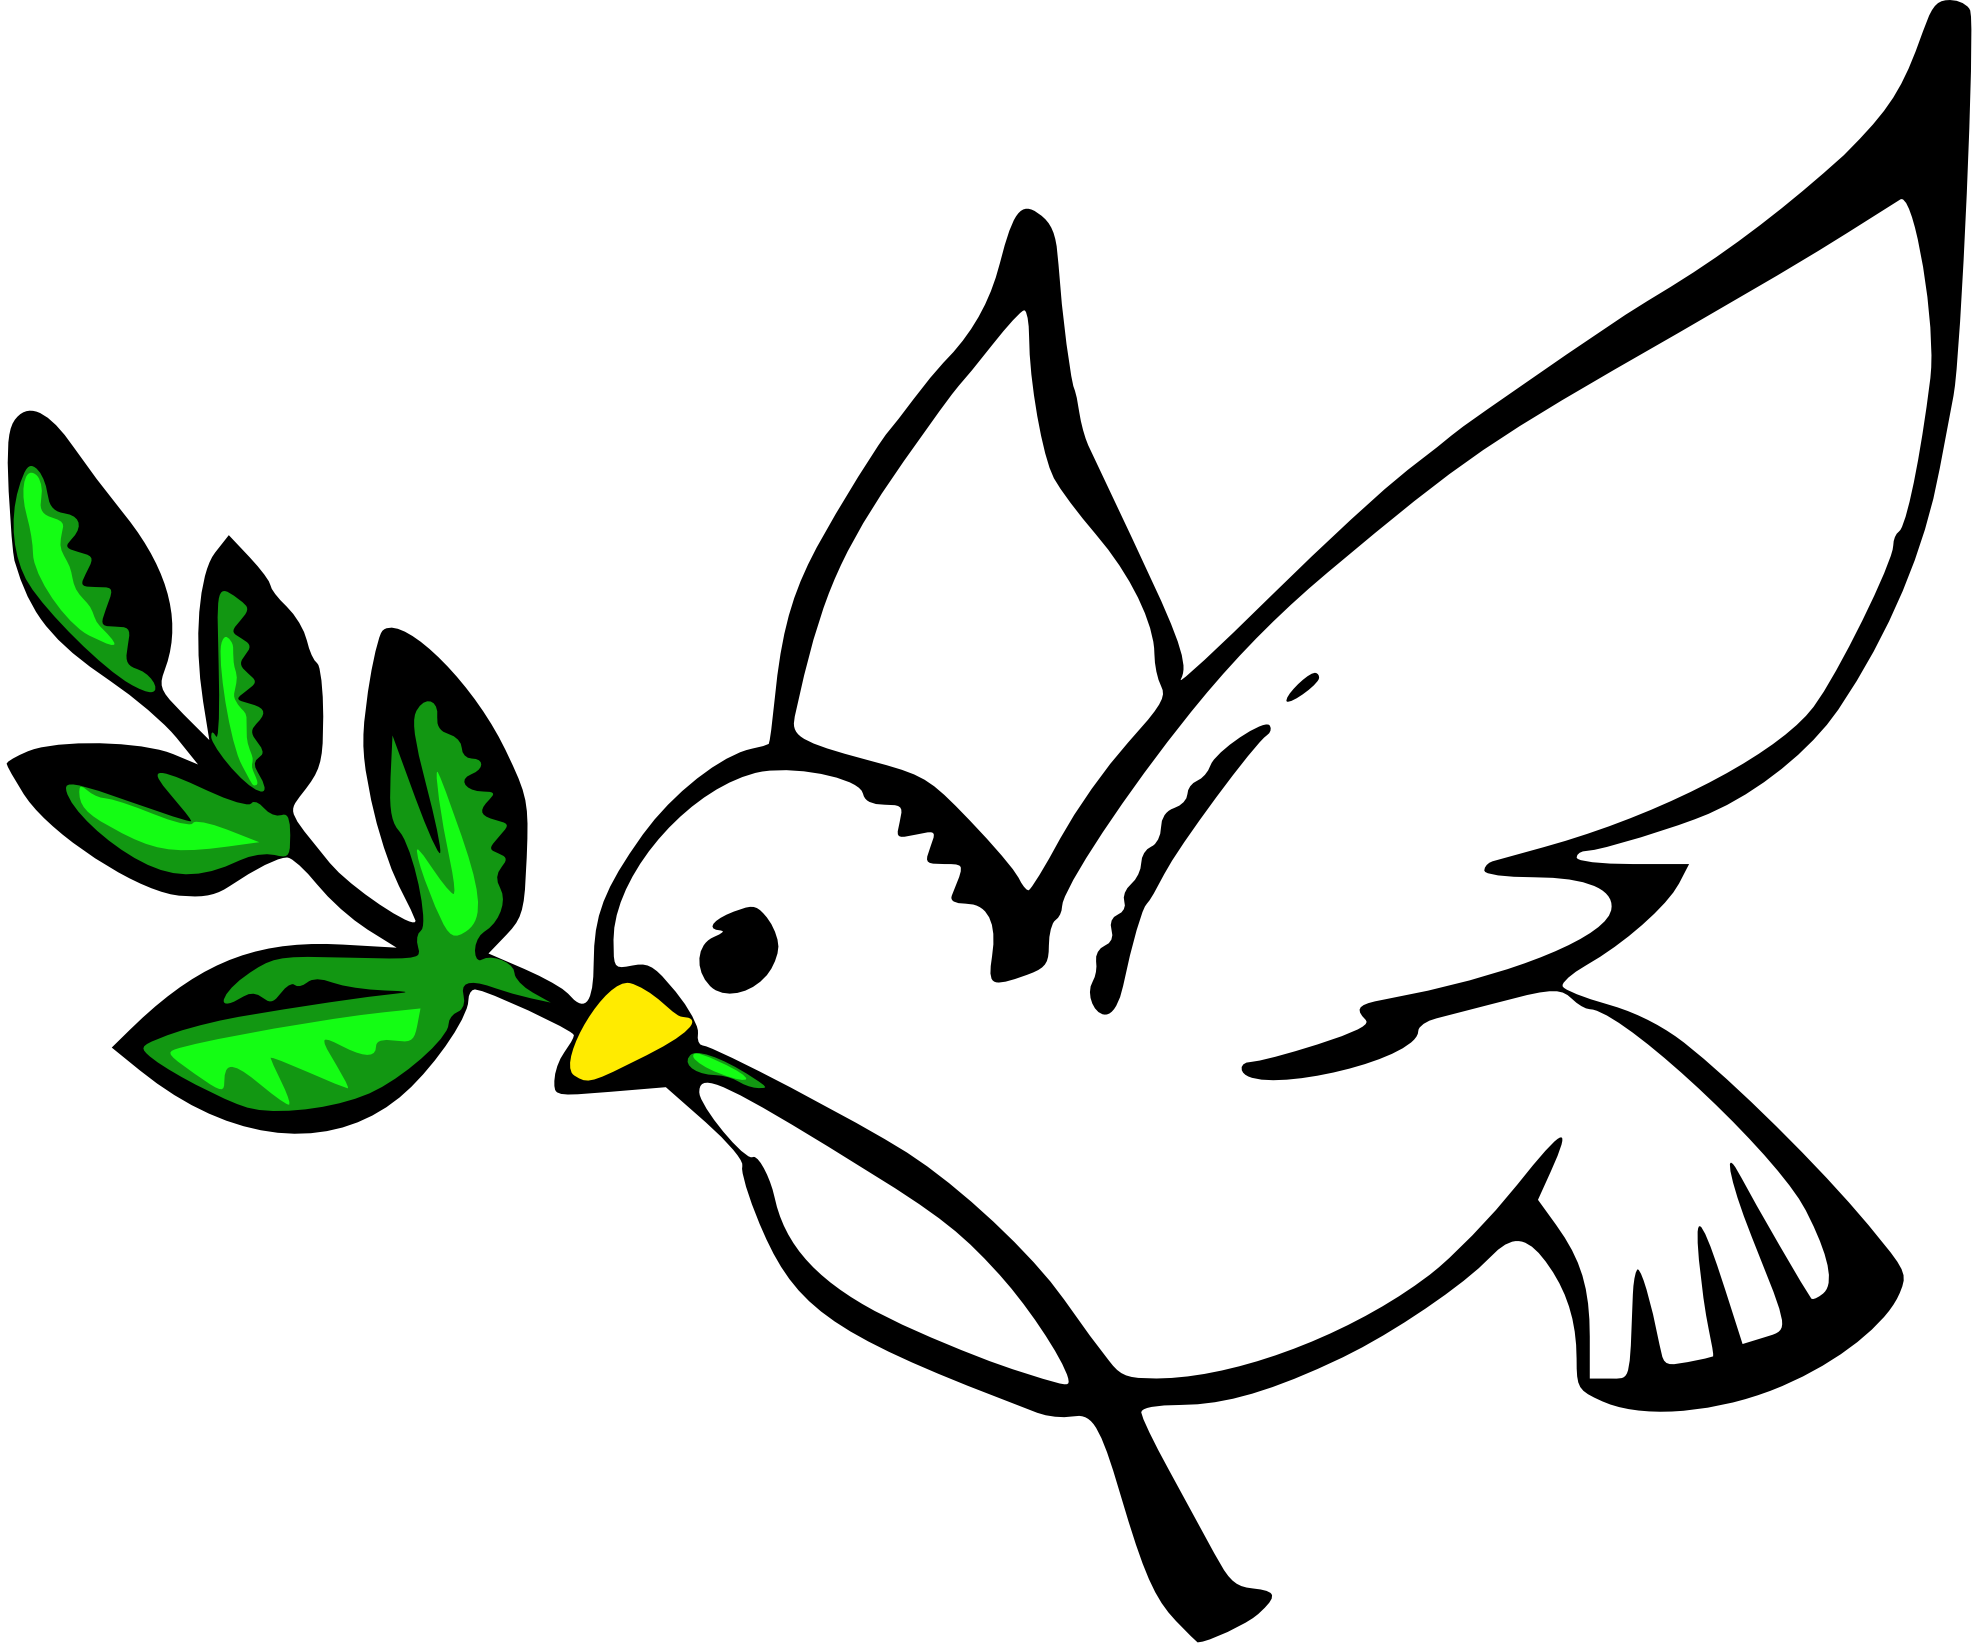 Peace Sign clipart social justice Justice ClipartBarn clipartfest clipart 3